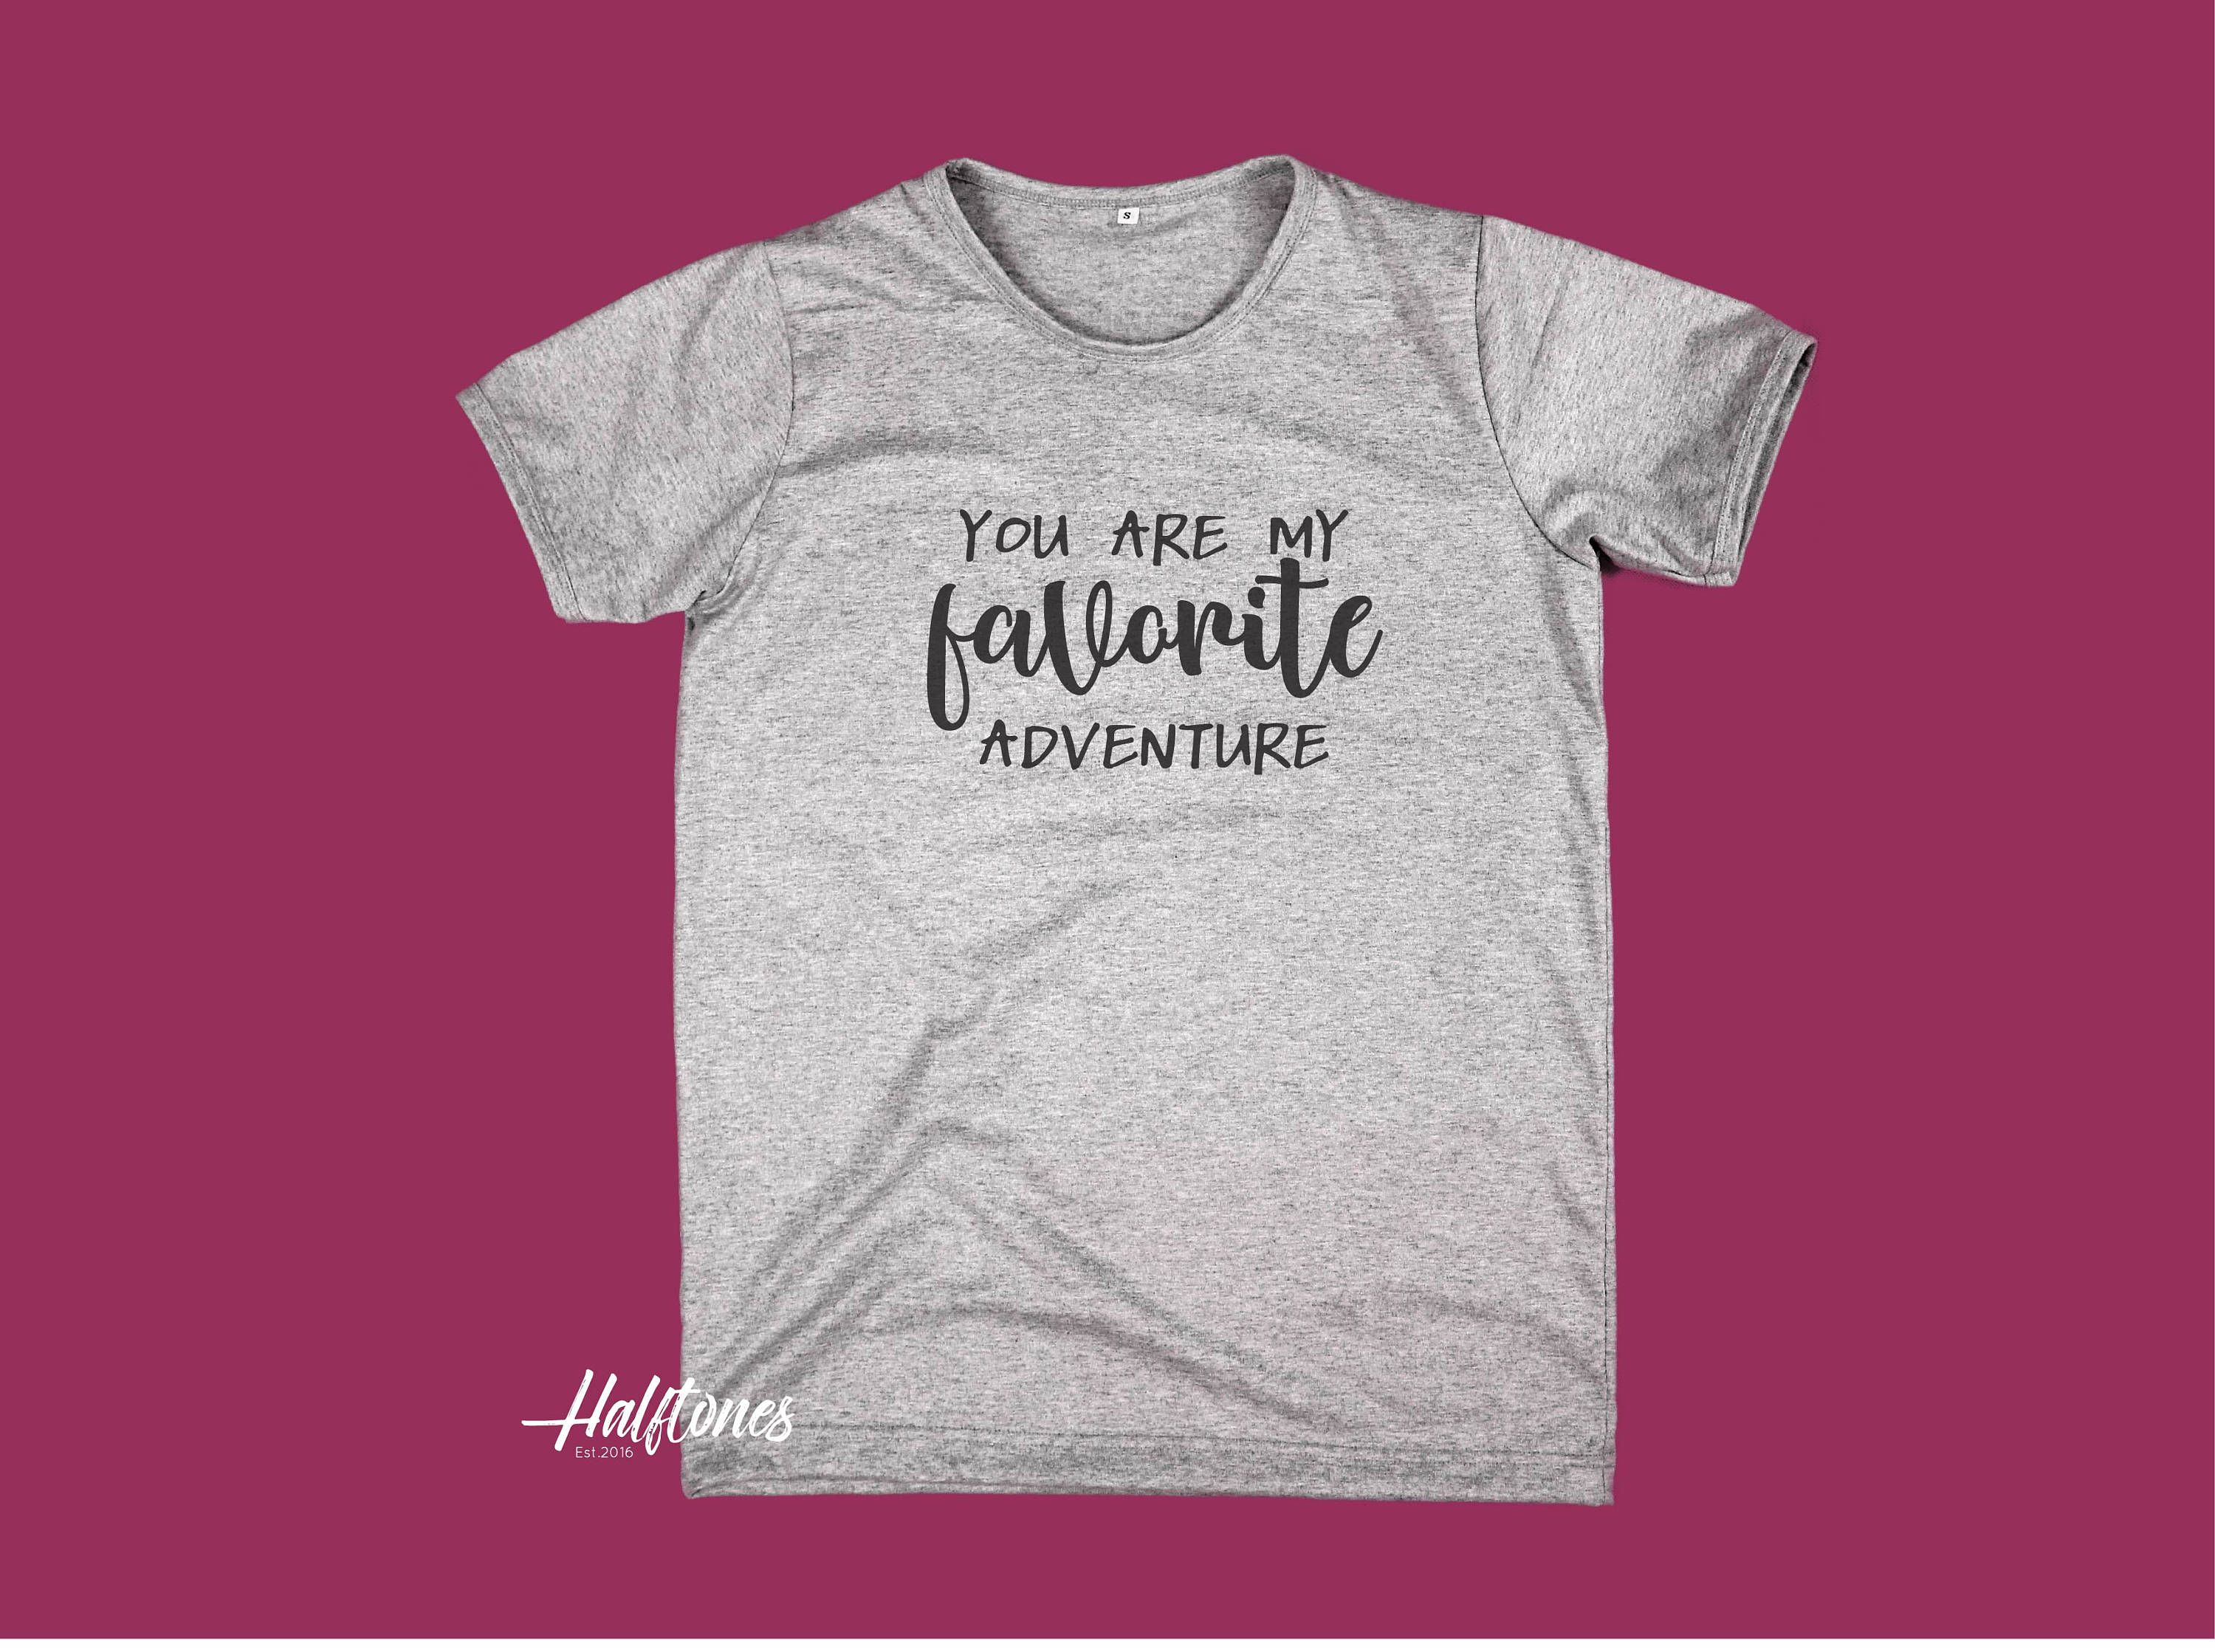 Youre My Favorite Adventure Saying Funny Tumblr Hipster Teen Graphic Gift Lifestyle Screen Print Tee Shirt T Shirt Clothing Uni